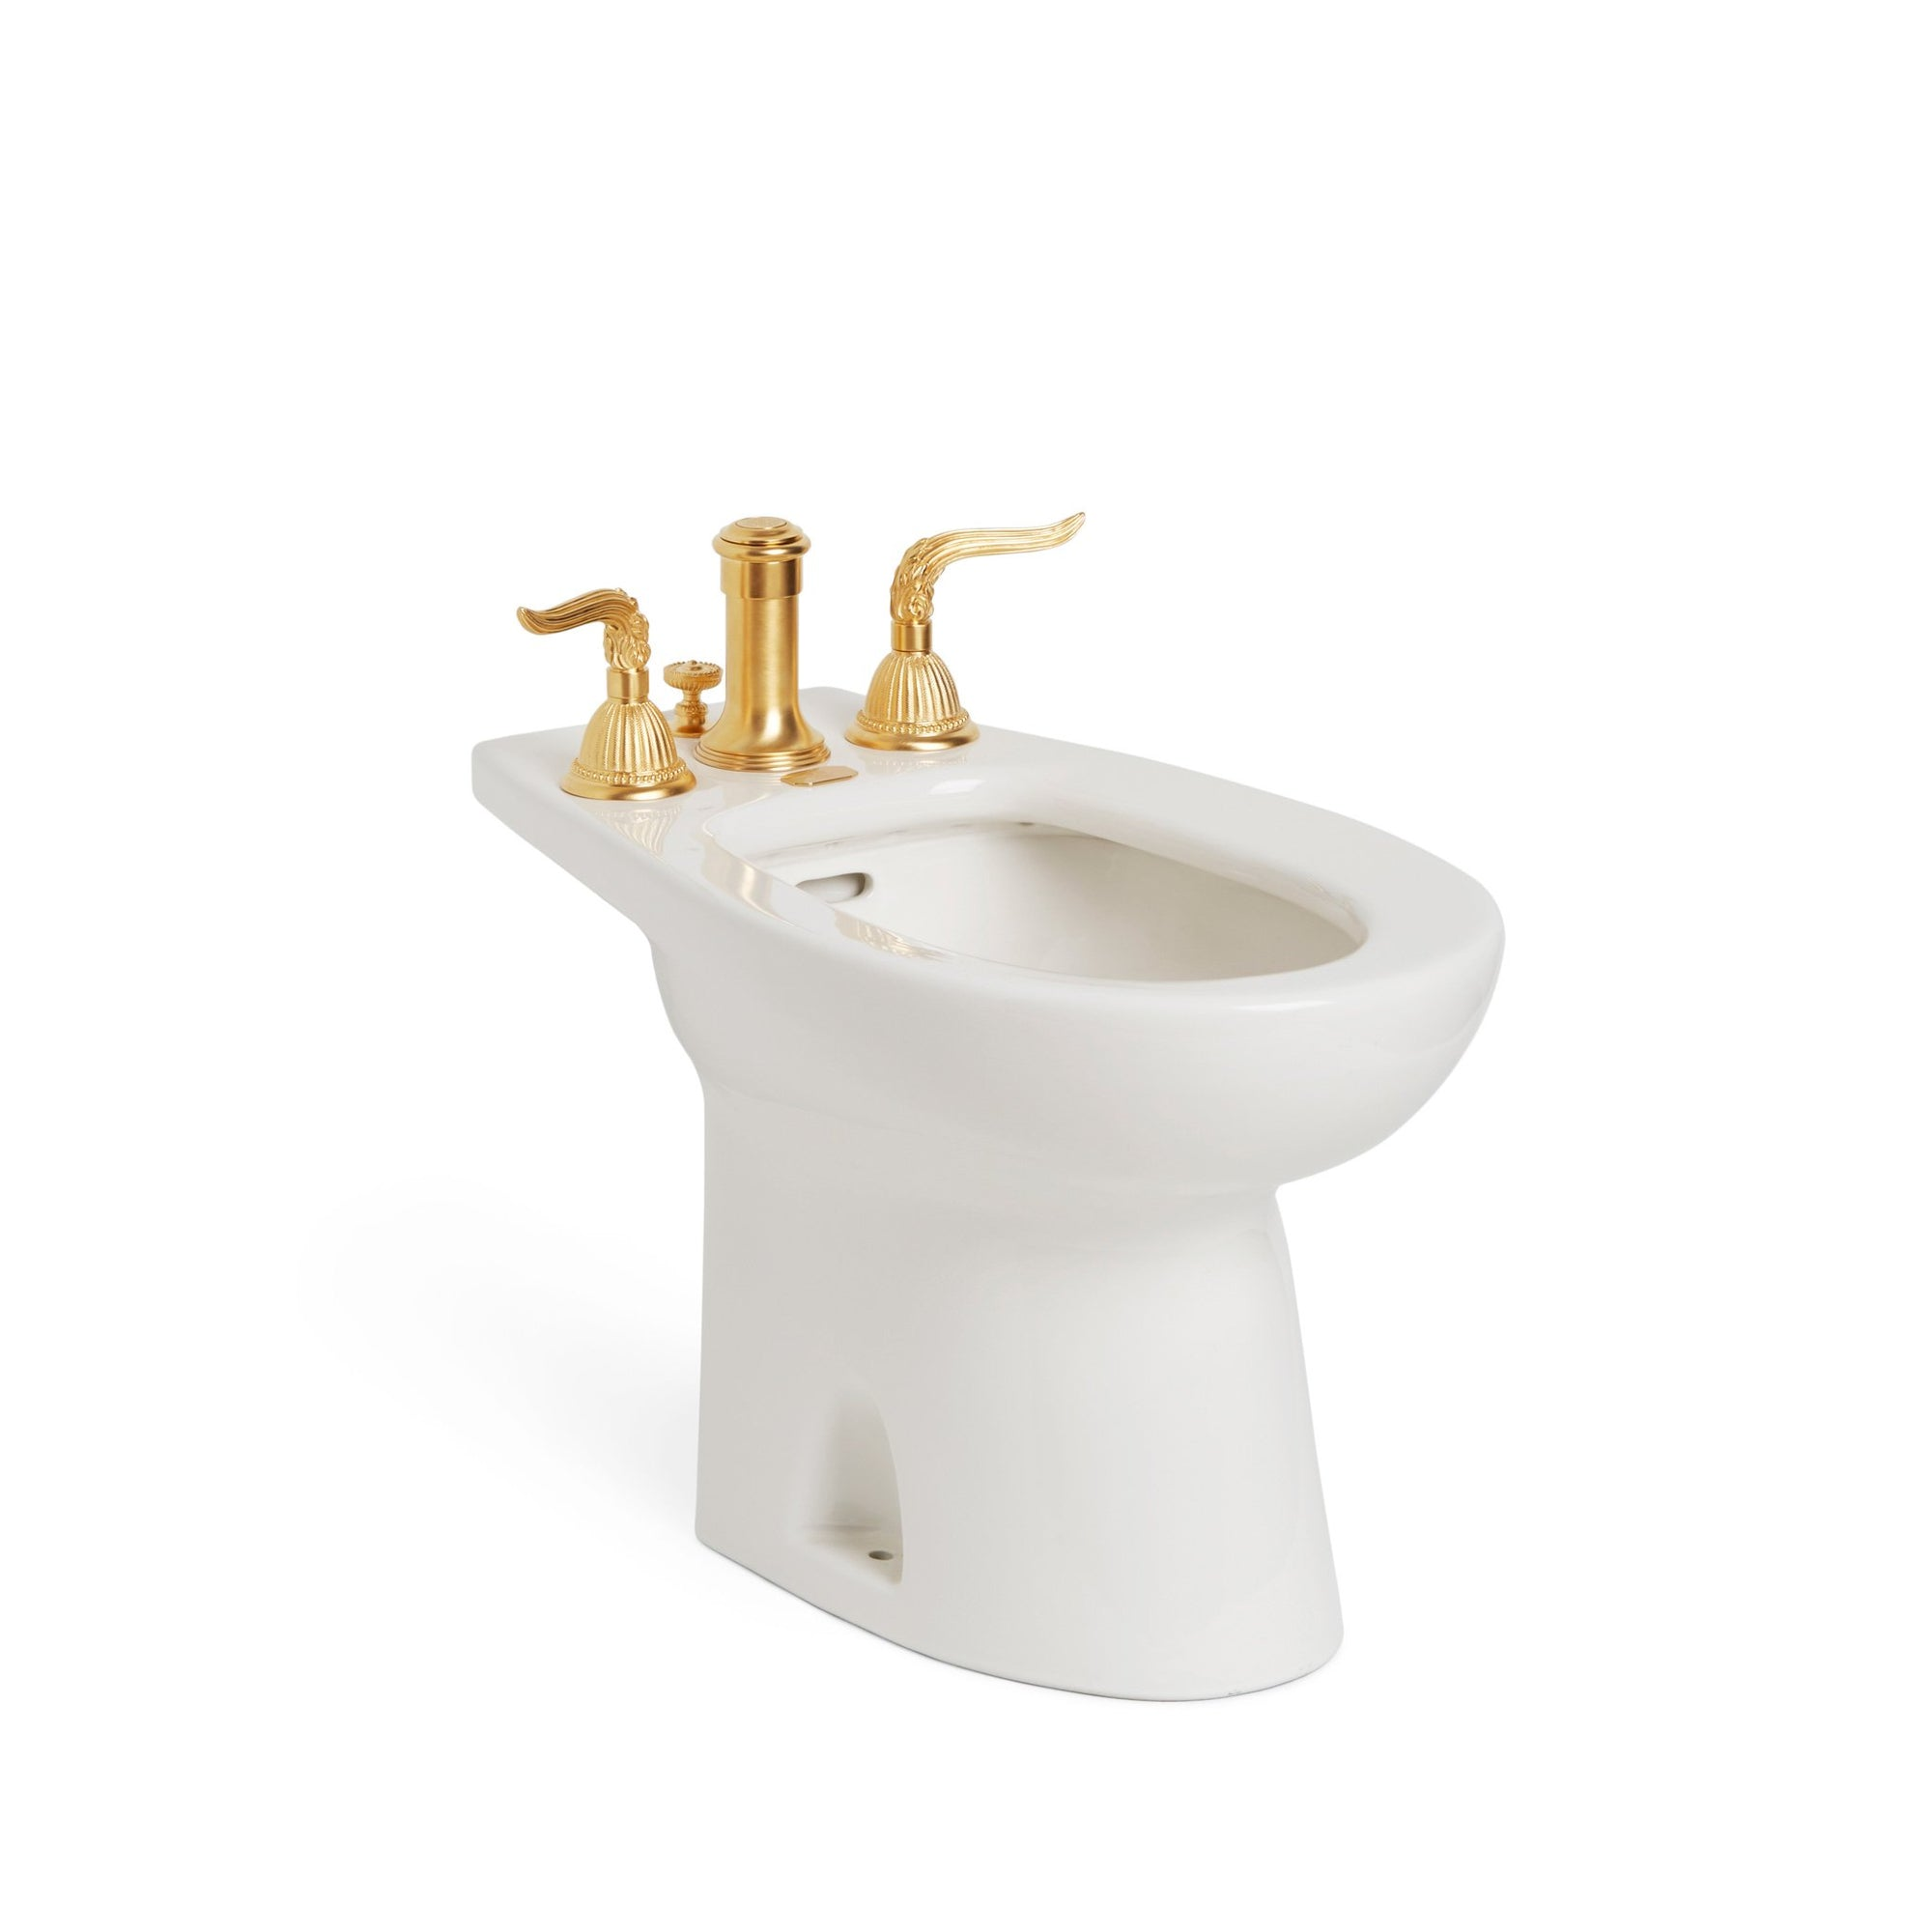 0235-T4-WHT Sherle Wagner International White Glazed Ceramic Bidet